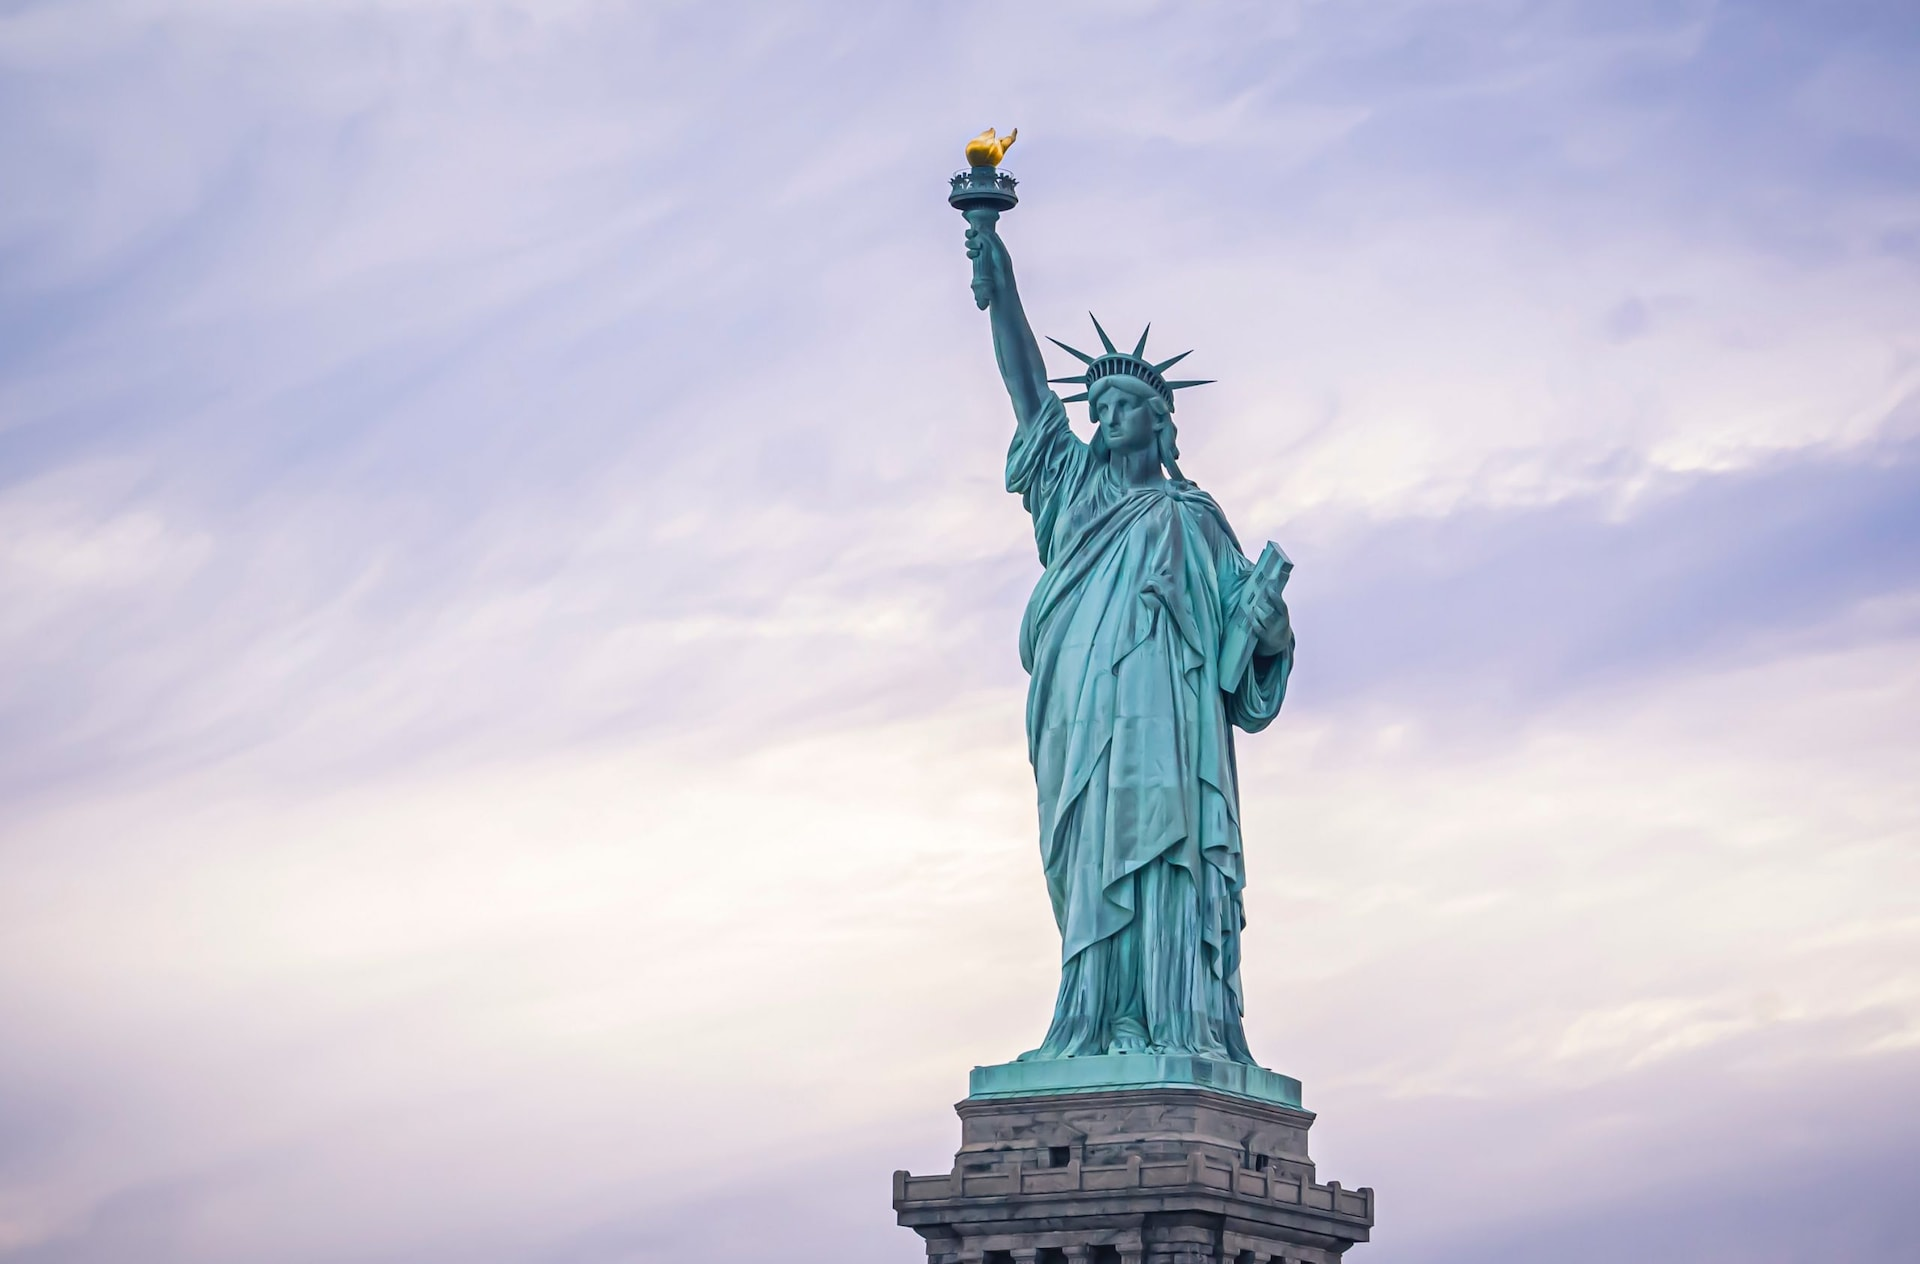 Which country gifted the Statue of Liberty to the United States of America?